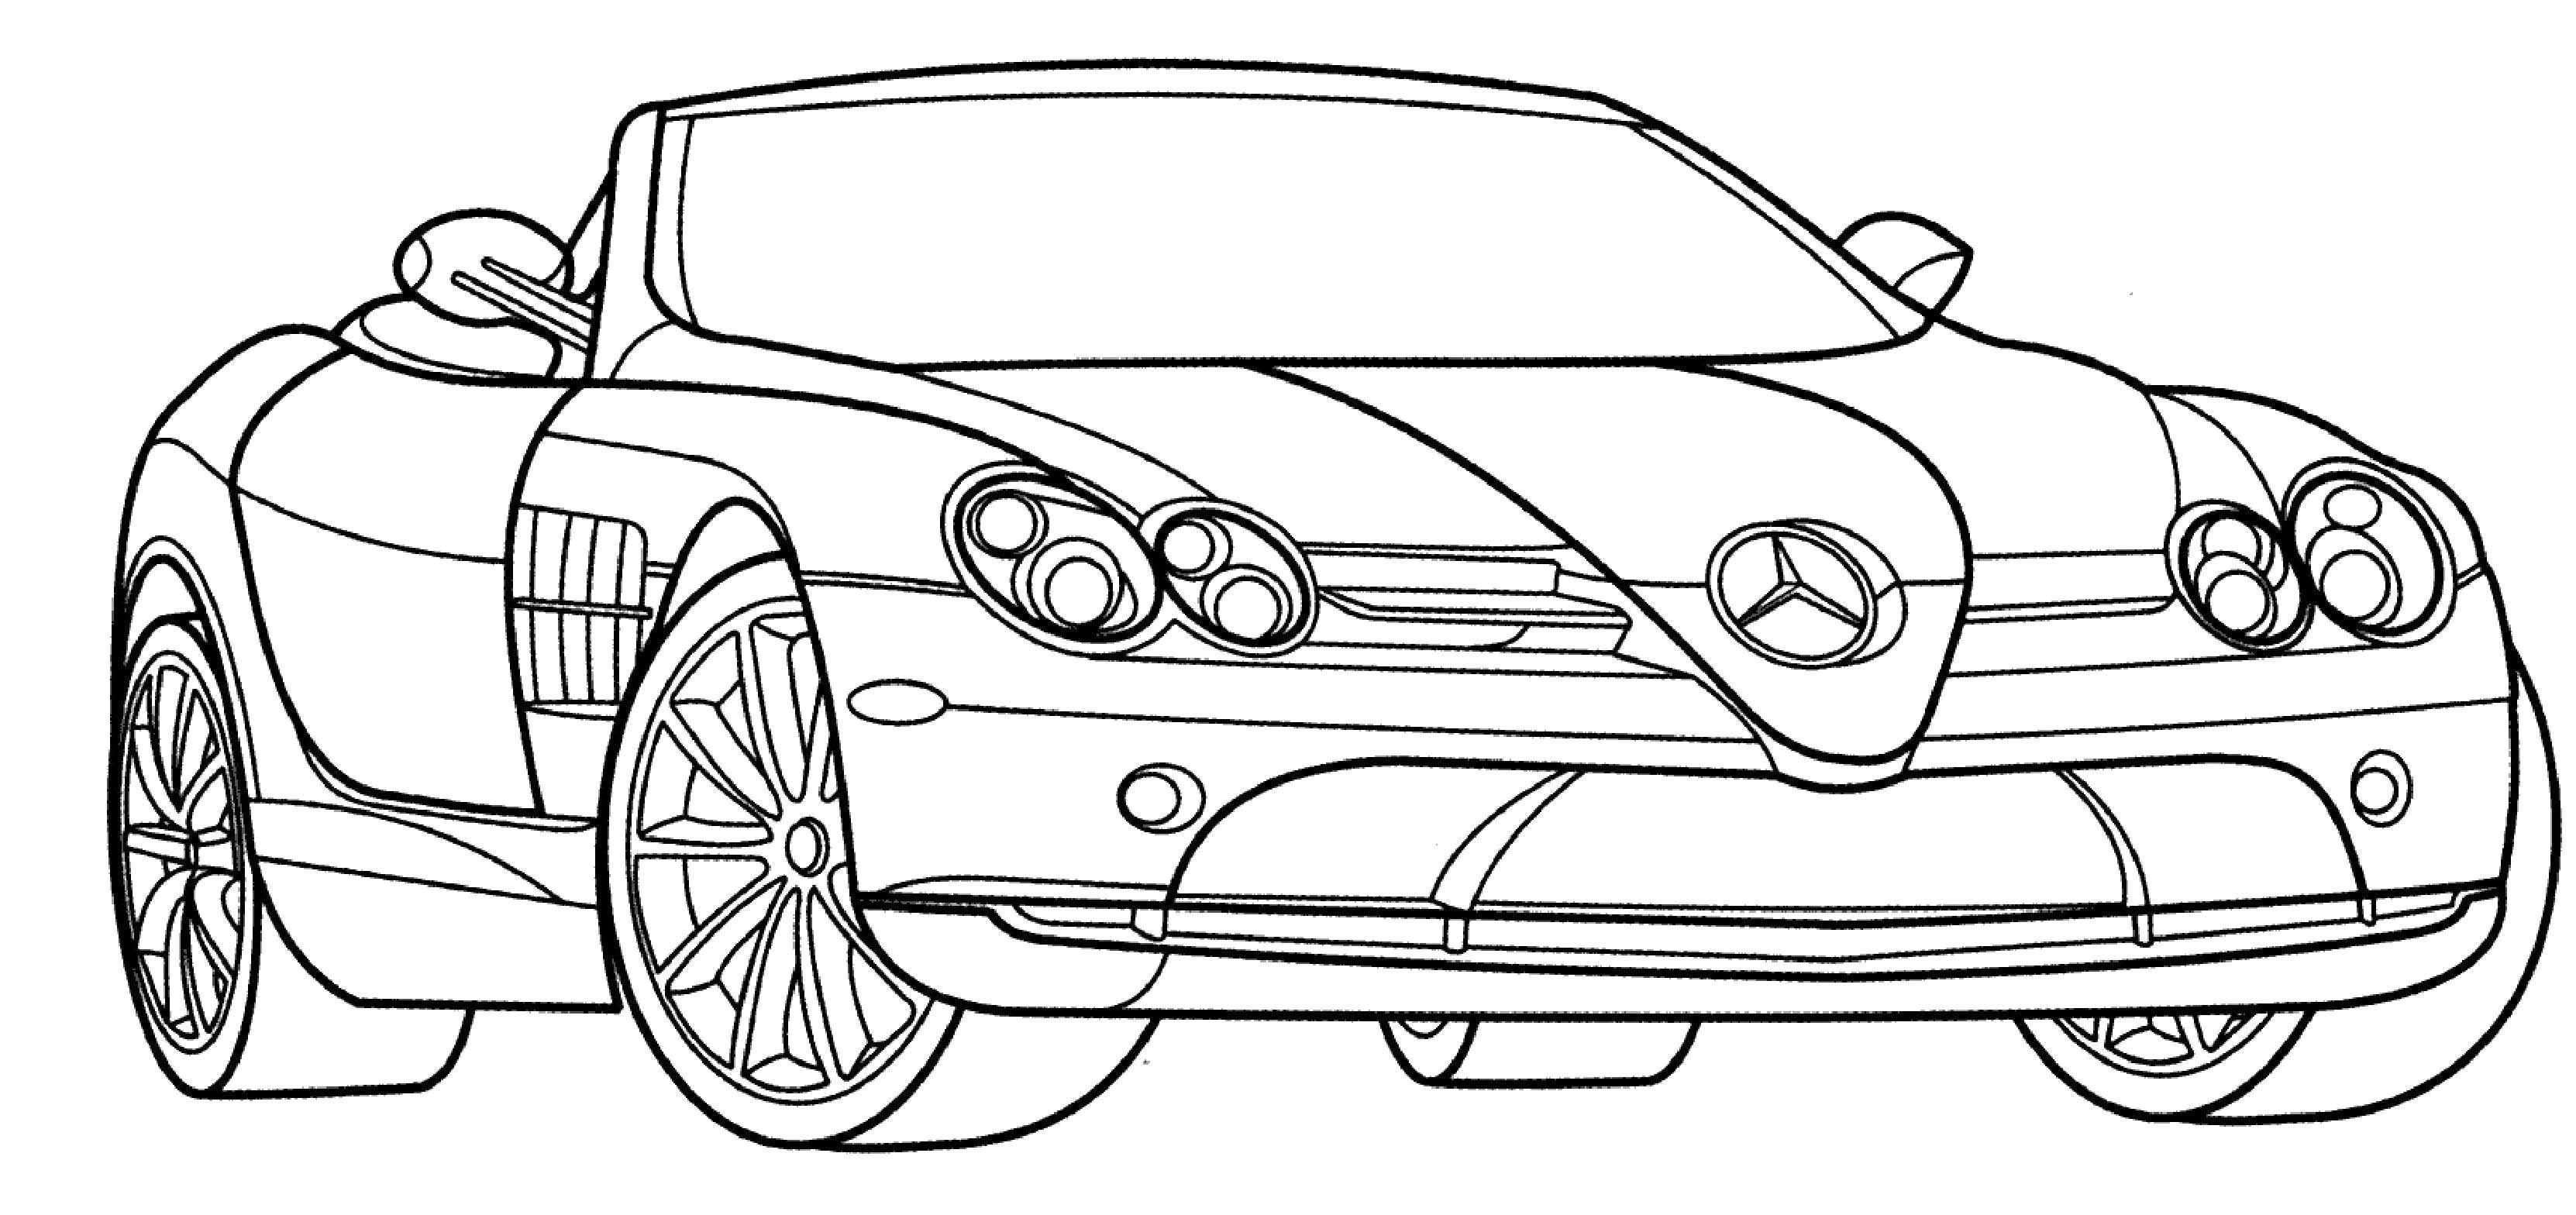 Sports Cars Coloring Pages Bing